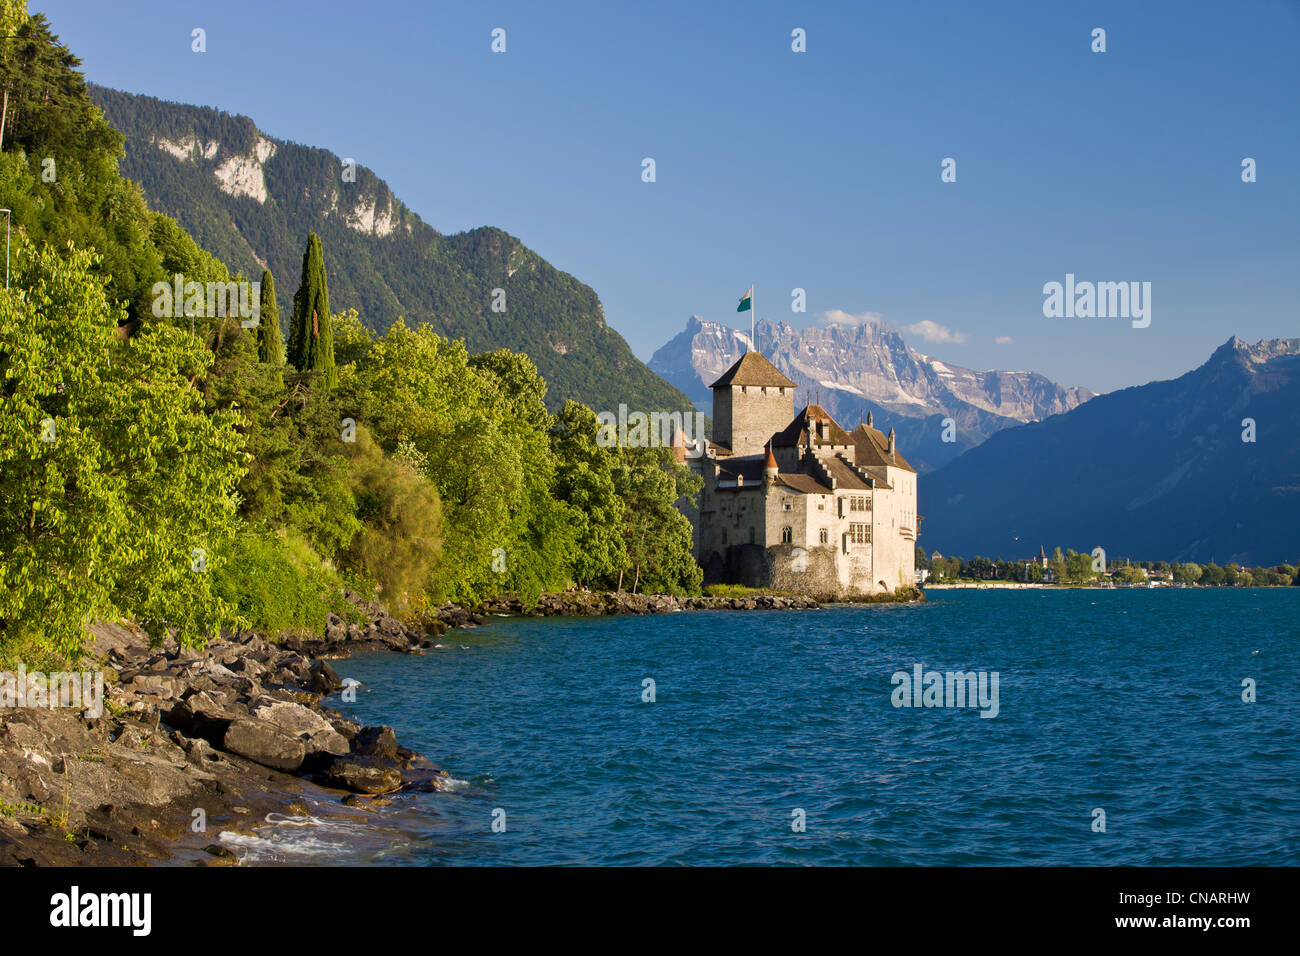 Suisse, Canton of Vaud, Lake Geneva, Veytaux, Chillon Castle at South Montreux - Stock Image